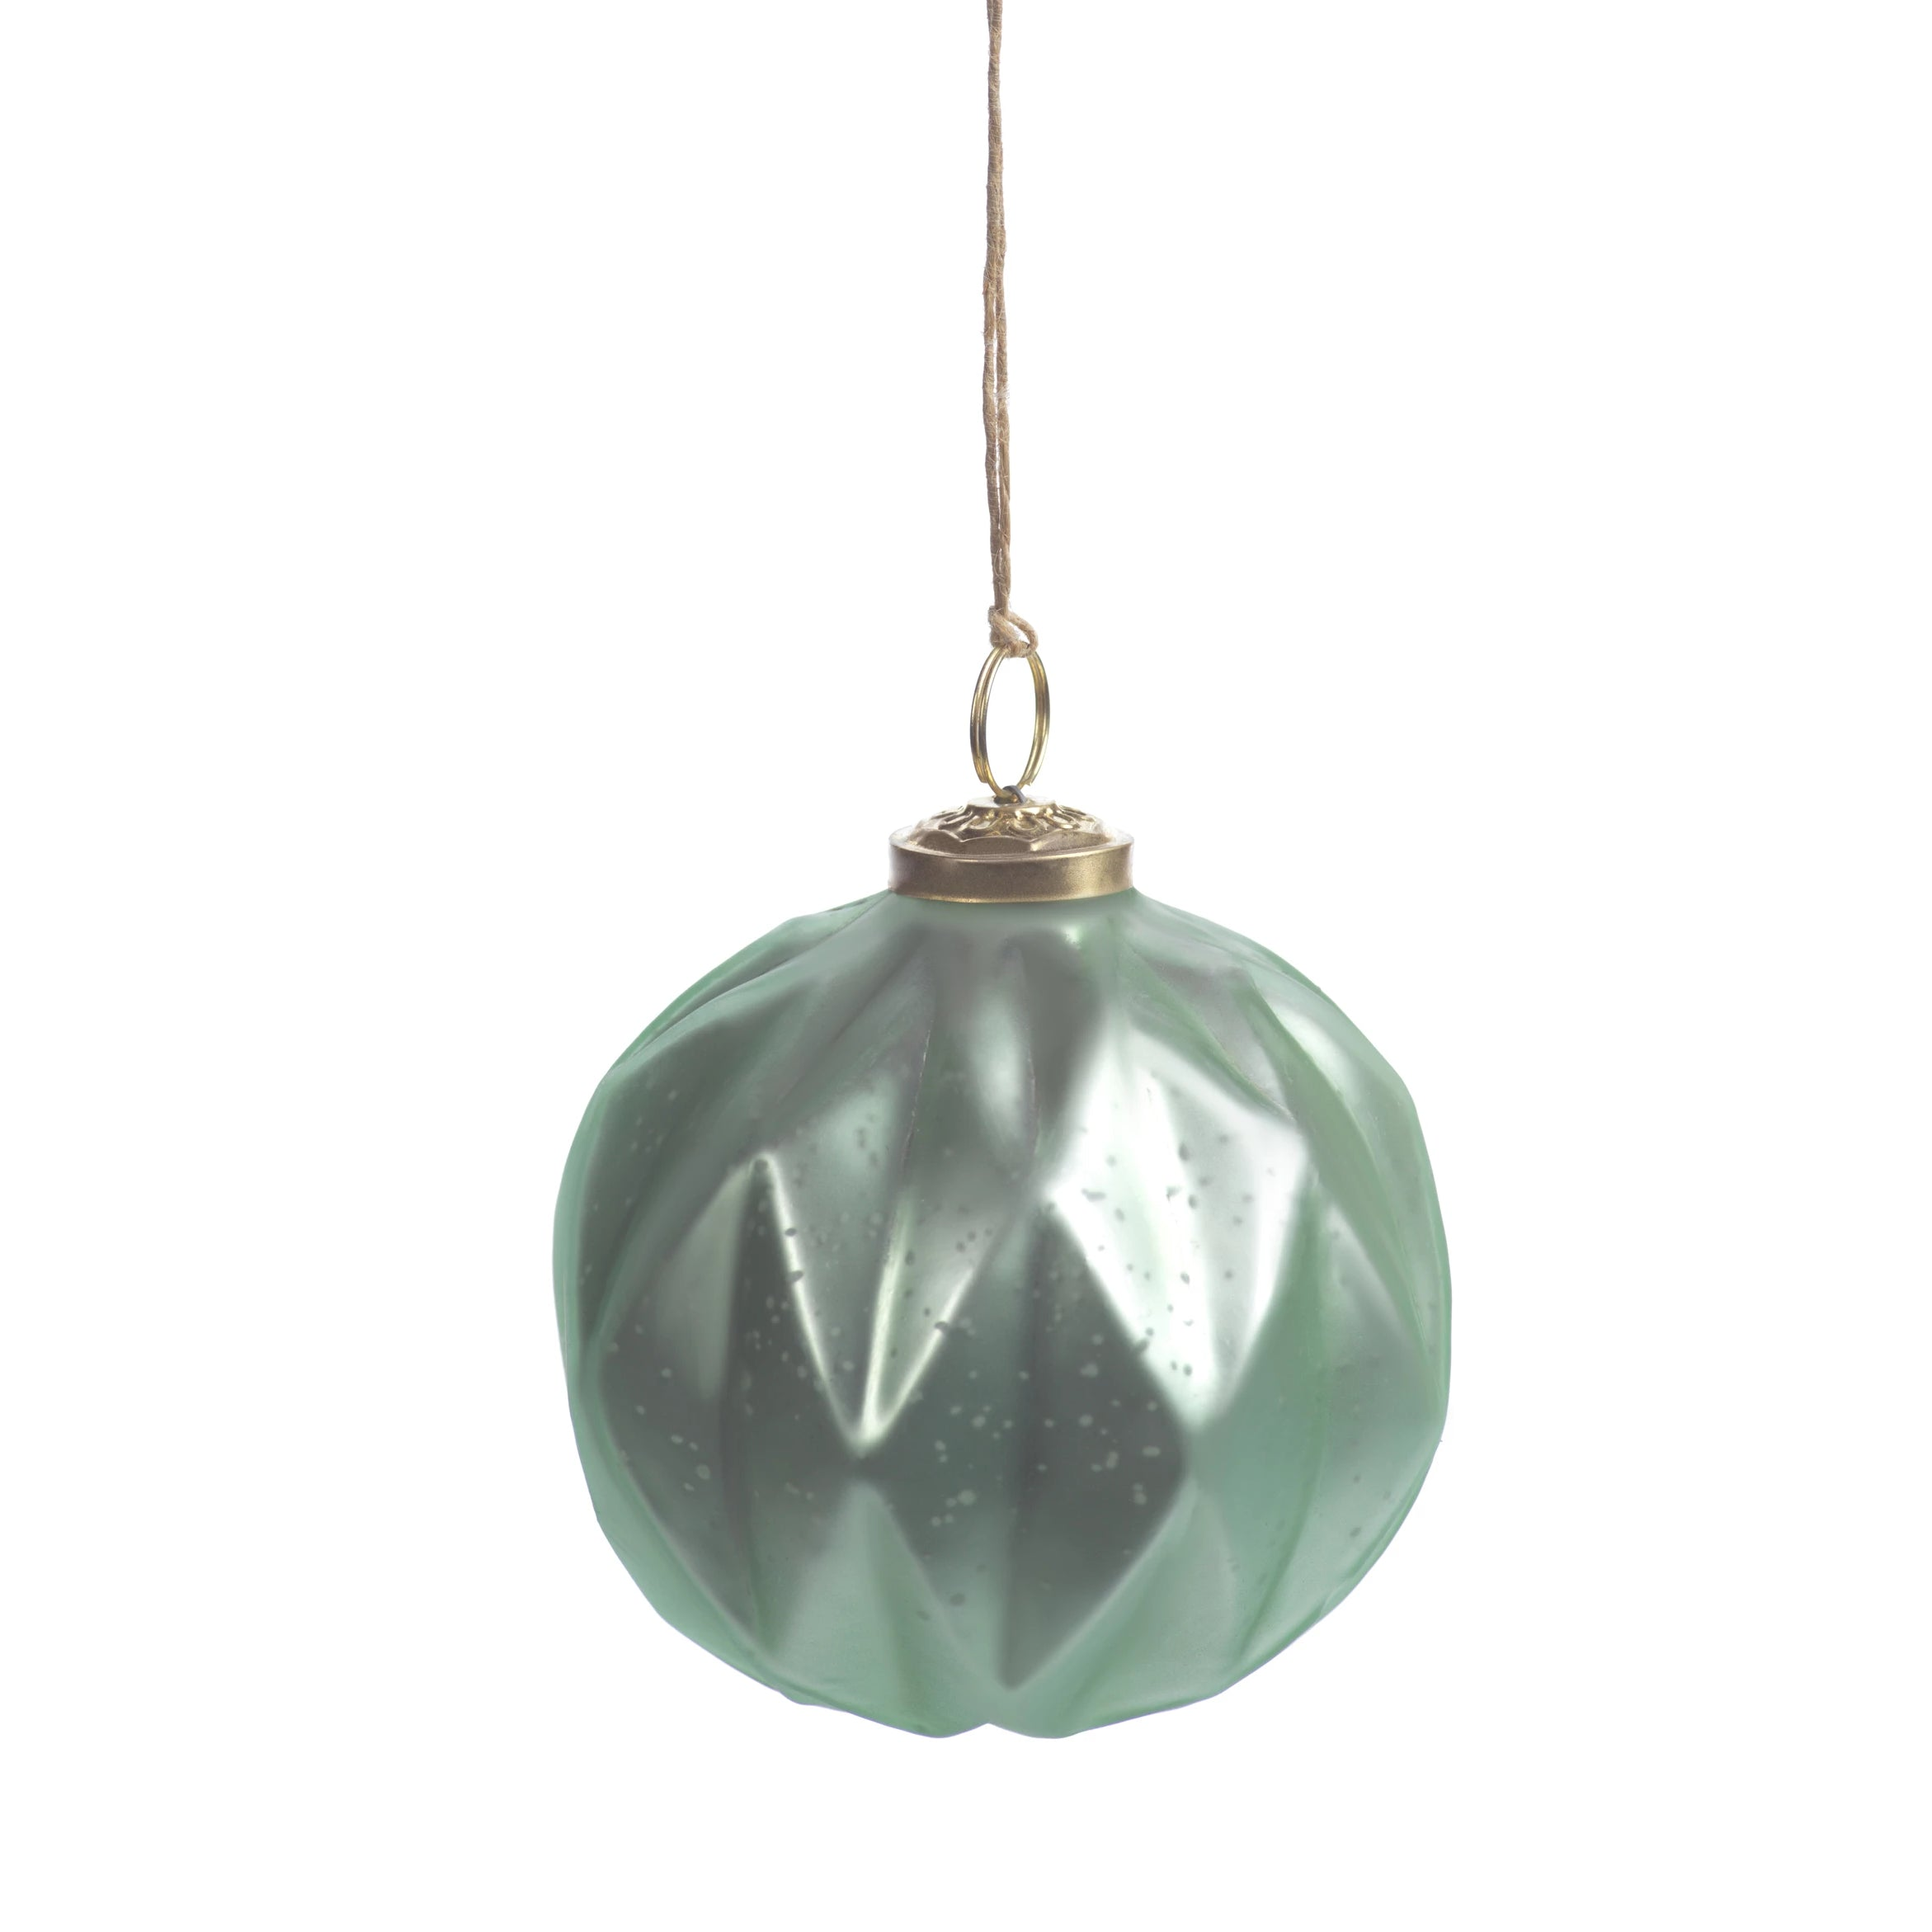 Faceted Glass Ornaments - Green - CARLYLE AVENUE